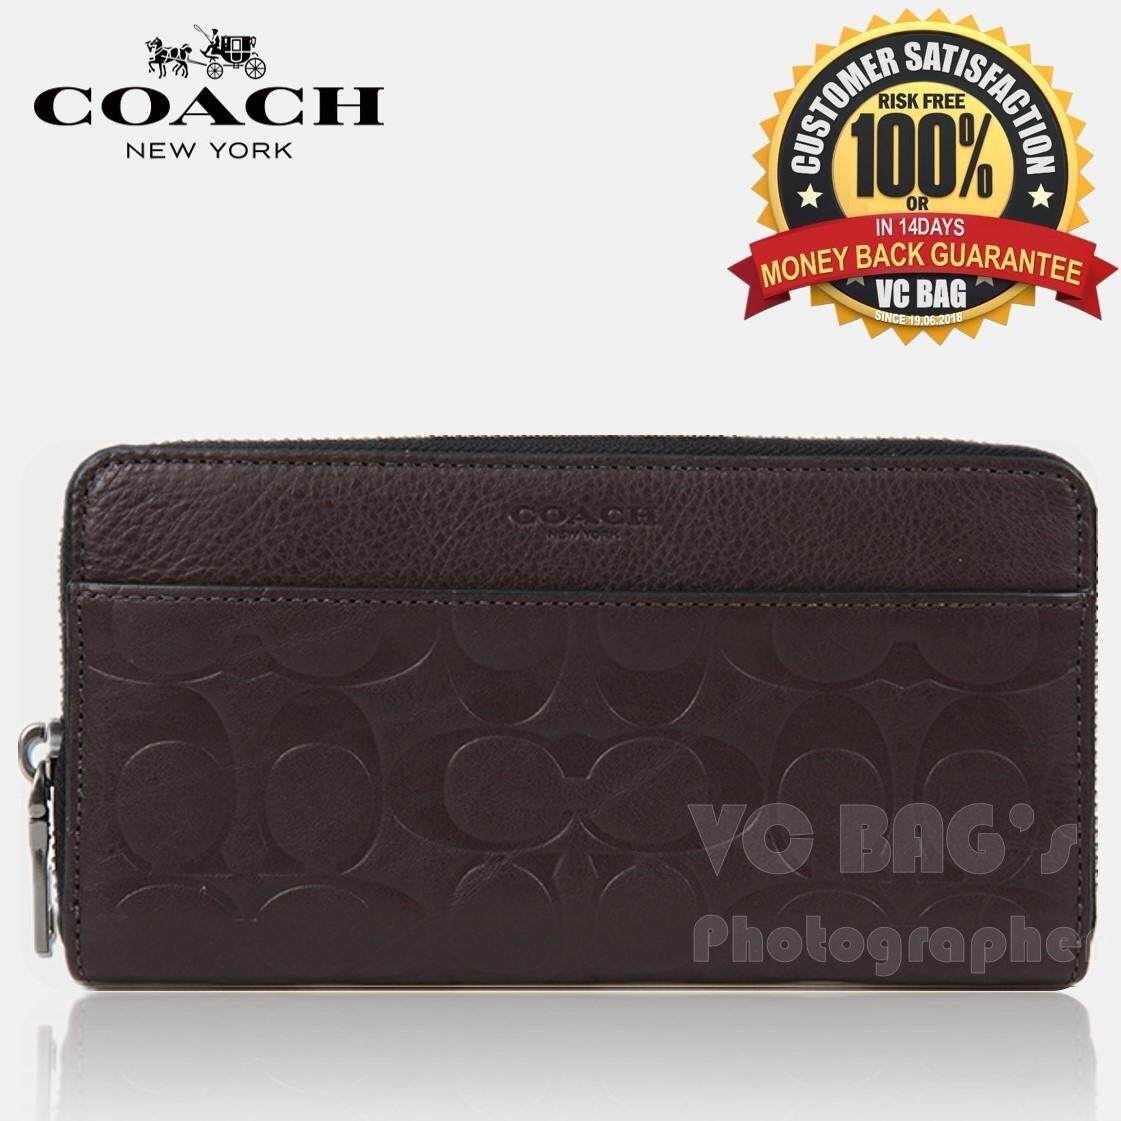 3d61c71be533d COACH F74999 Signature Embossed Leather Accordion Zip Around Wallet   Mahogany